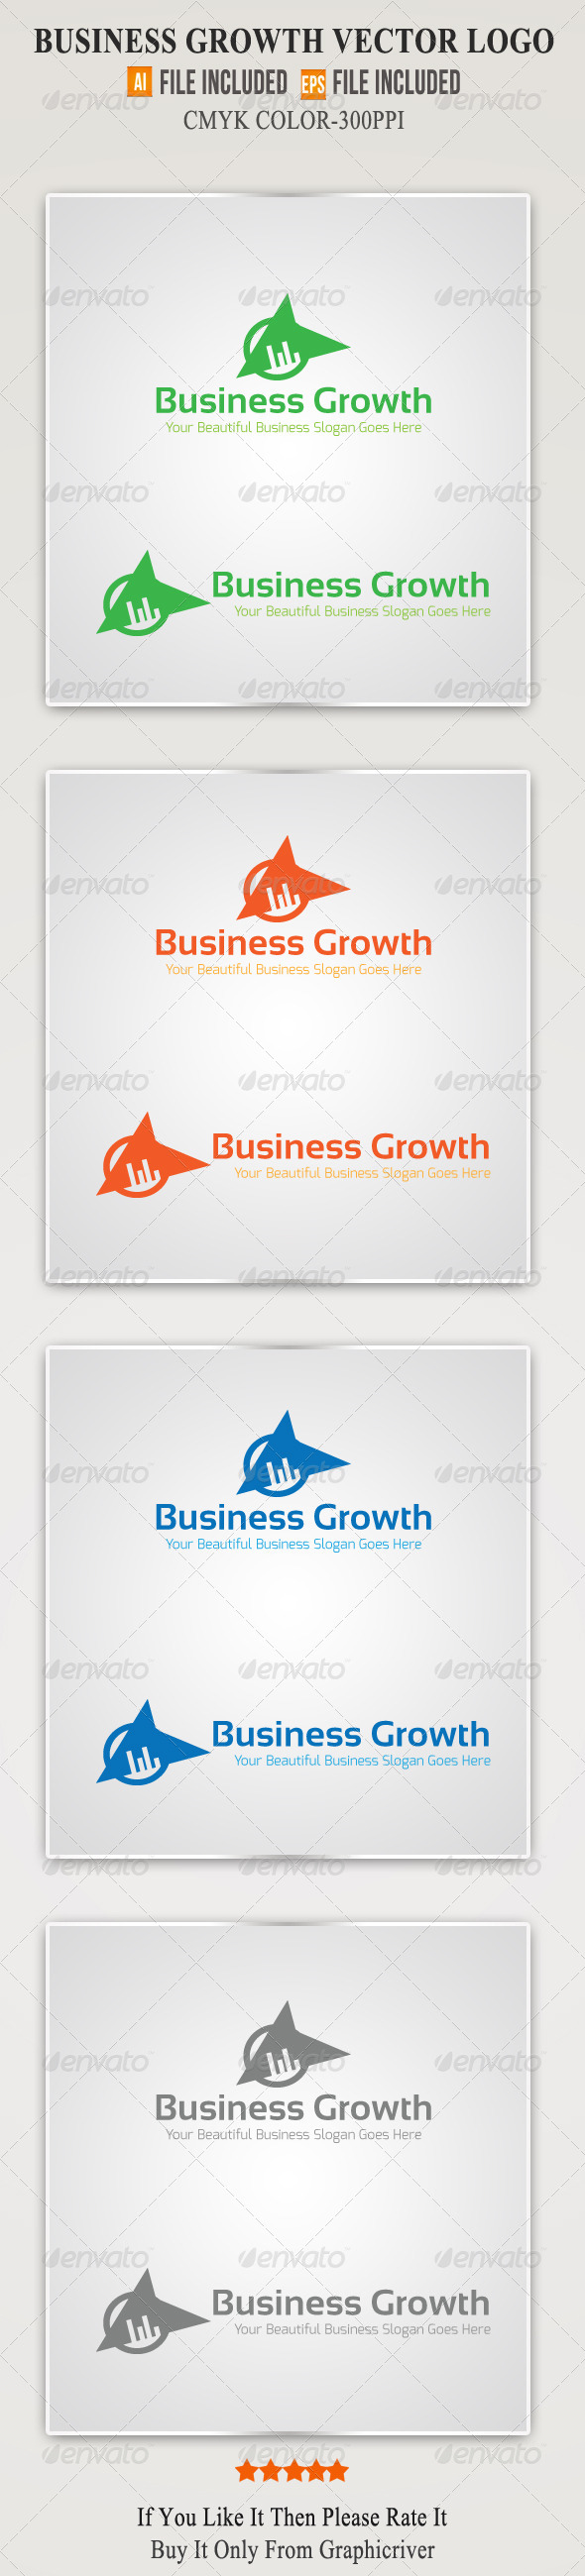 Business Growth Vector Logo Template 2 - Symbols Logo Templates